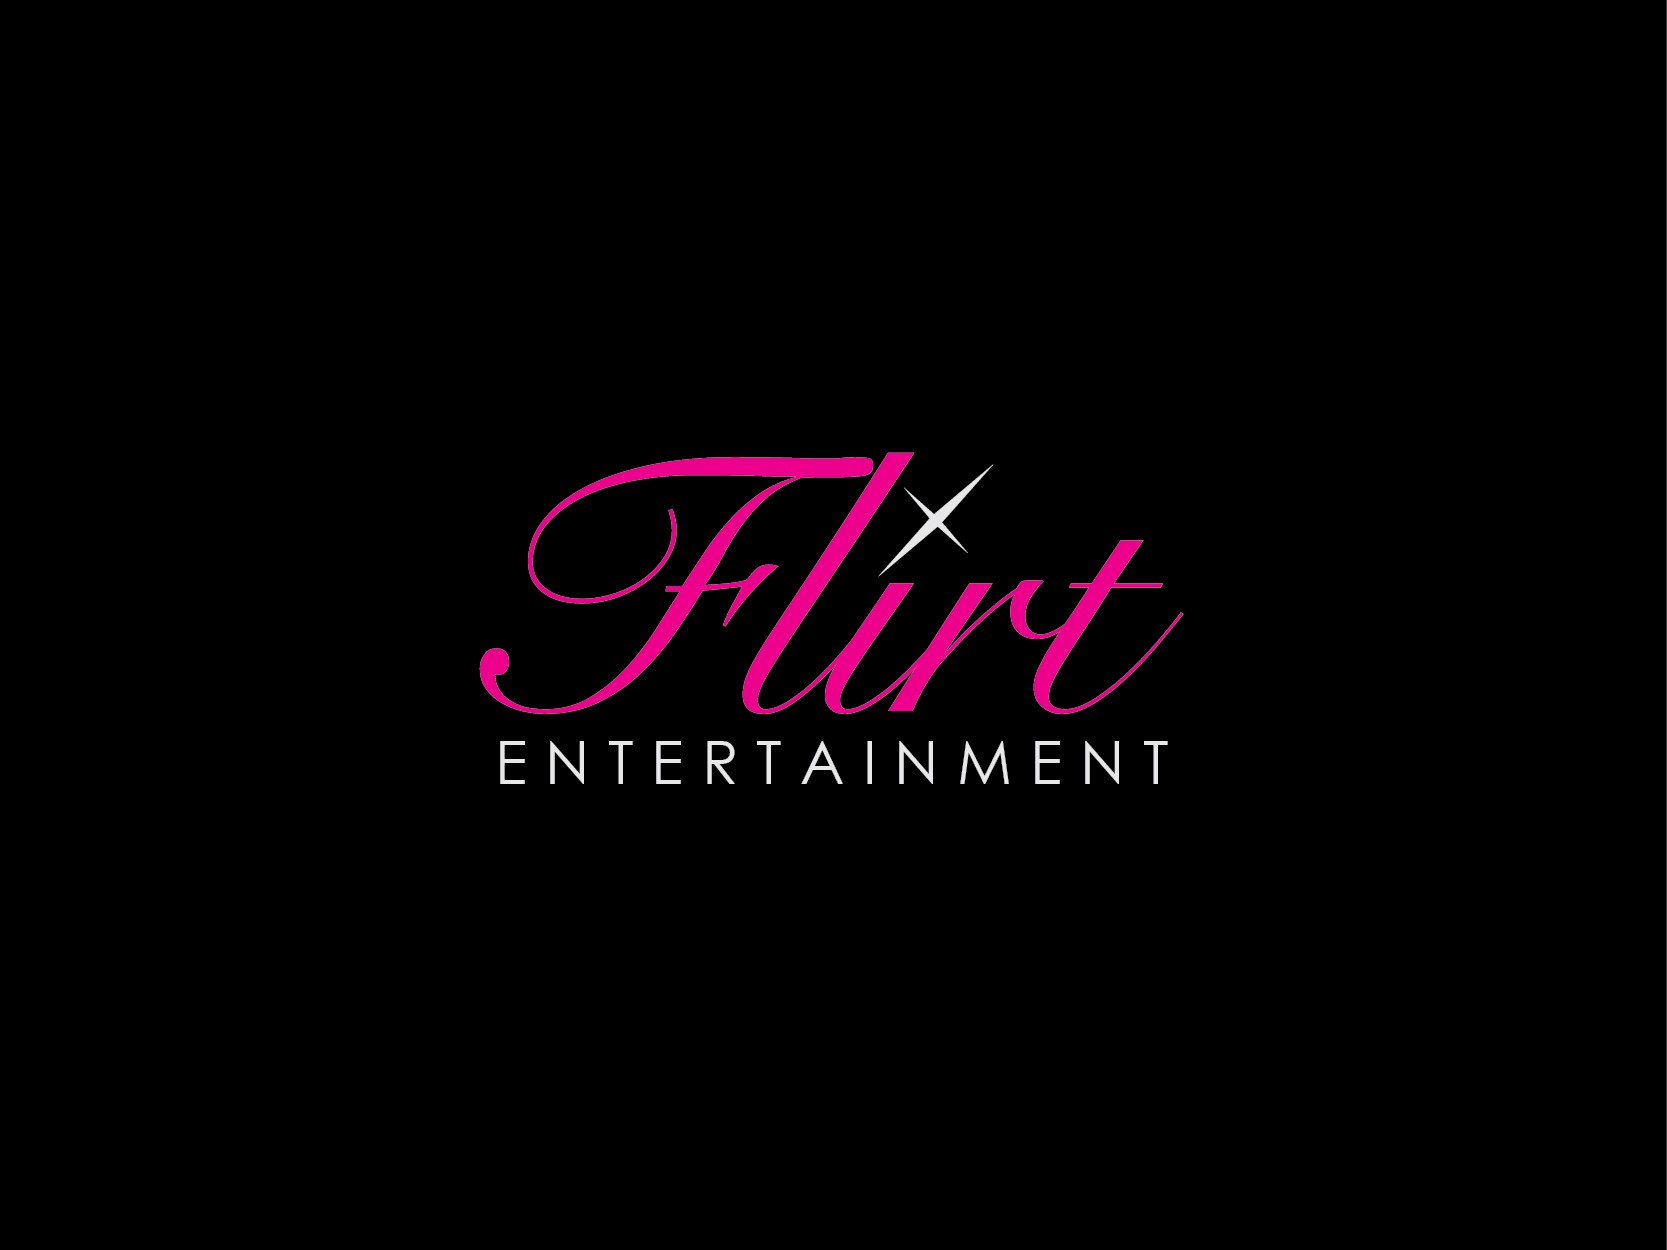 Design me the most catchy logo for our Dance Agency.Flirt Entertainment needs a new logo